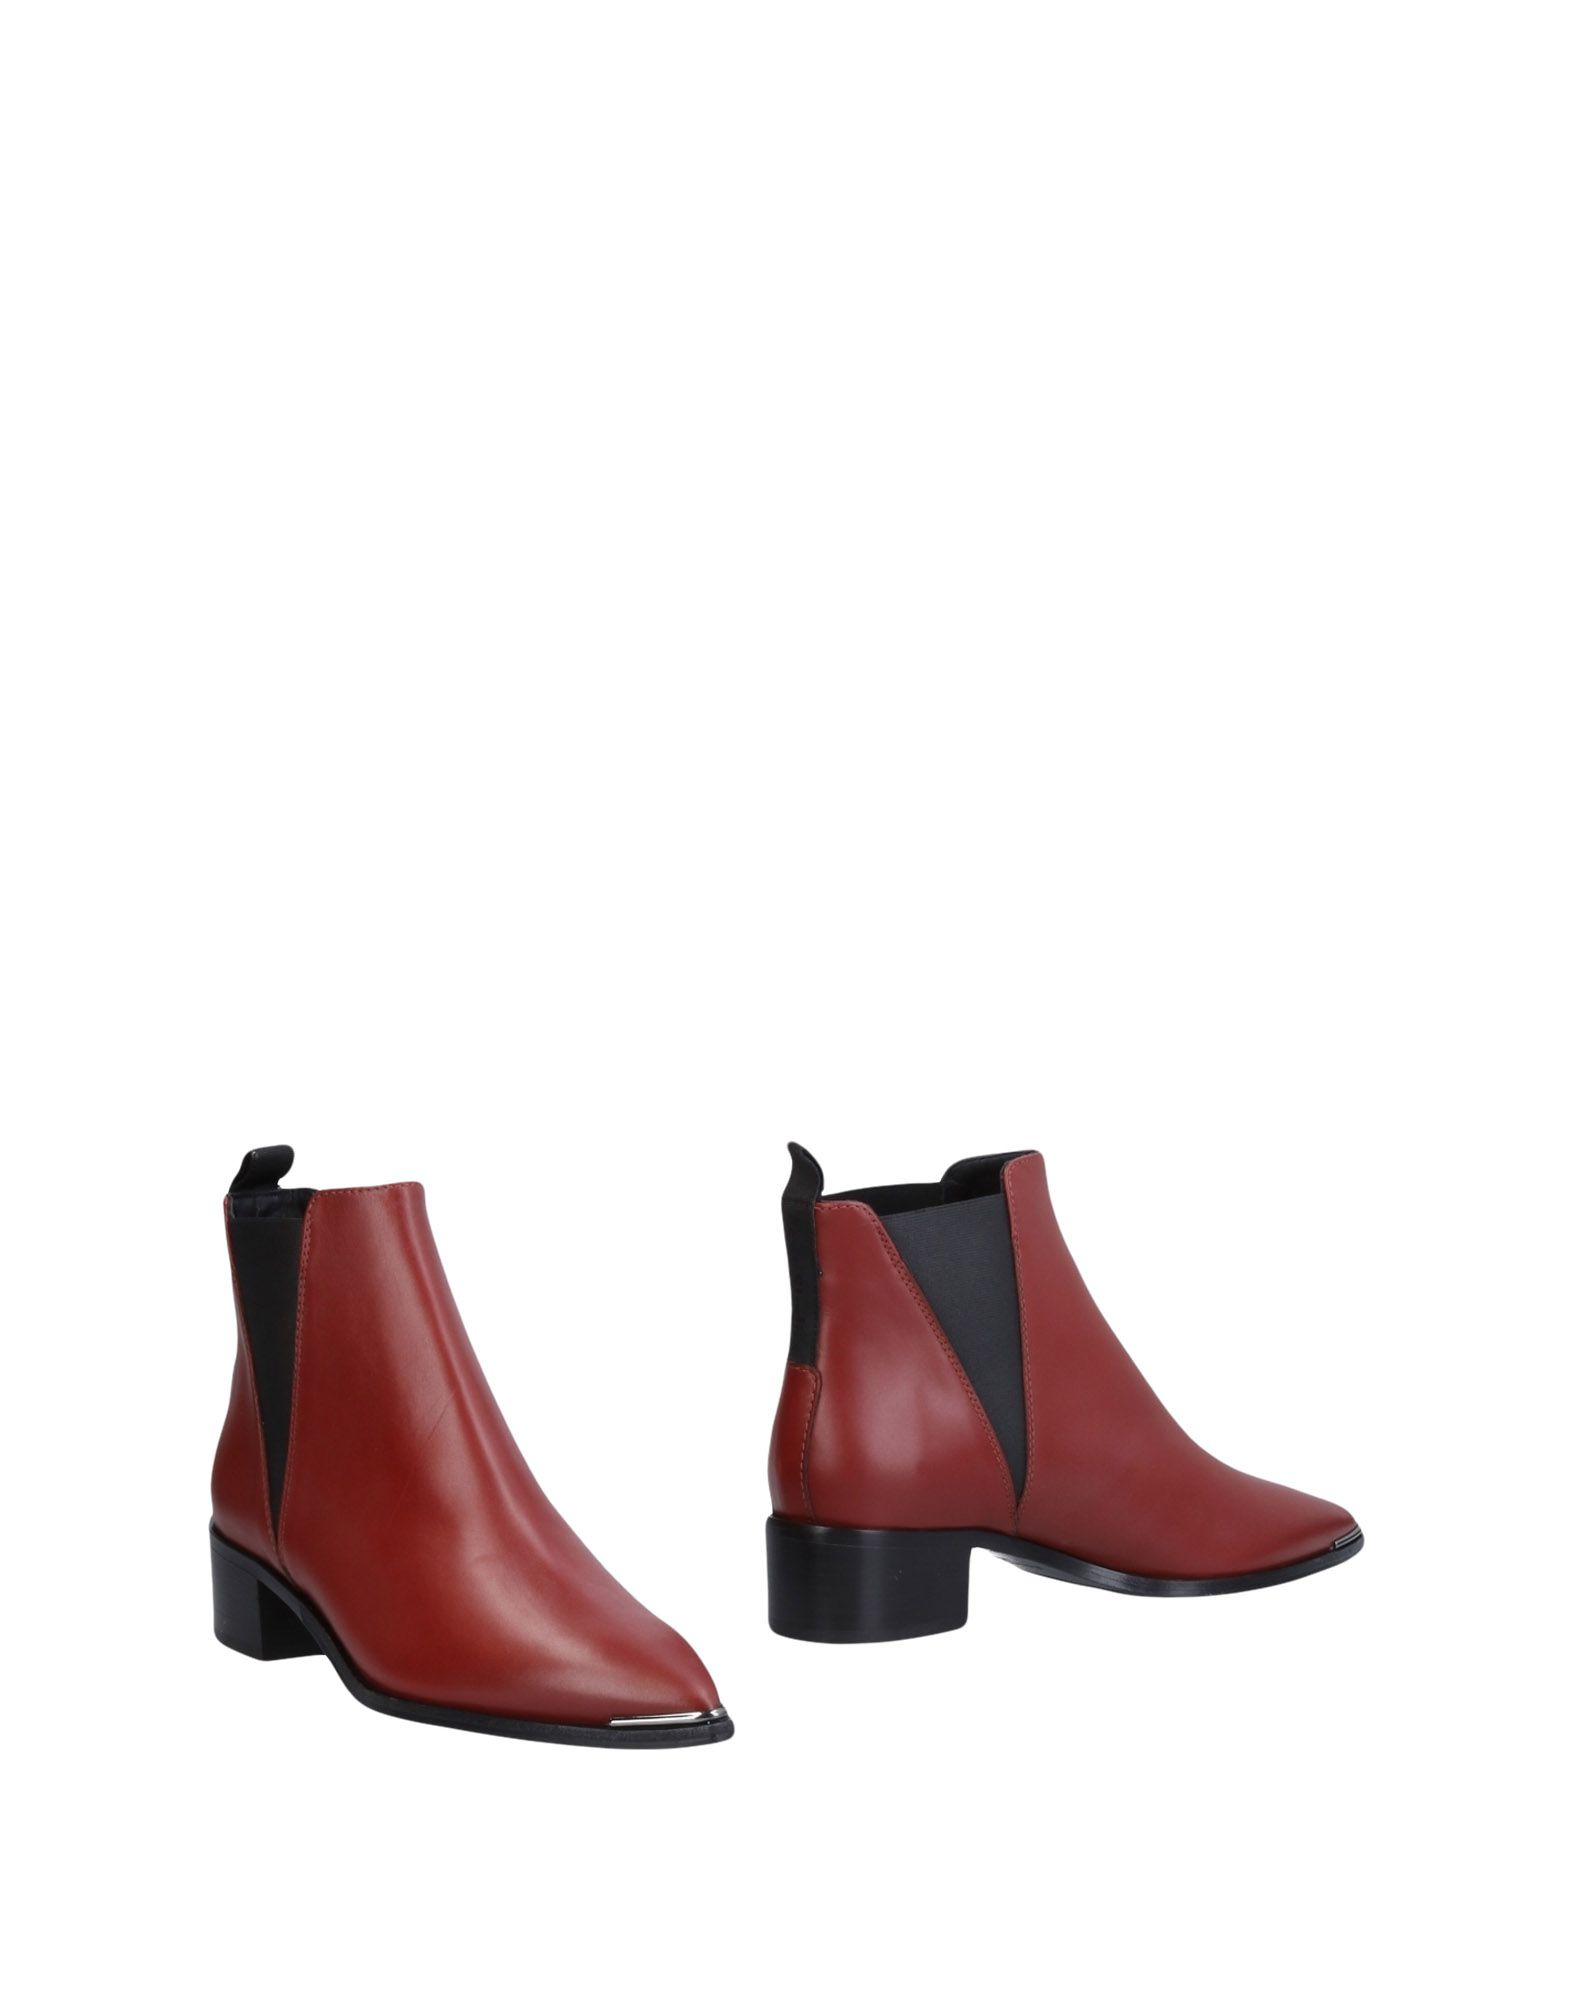 Acne Studios Chelsea strapazierfähige Boots Damen  11453986GGGut aussehende strapazierfähige Chelsea Schuhe 292be3